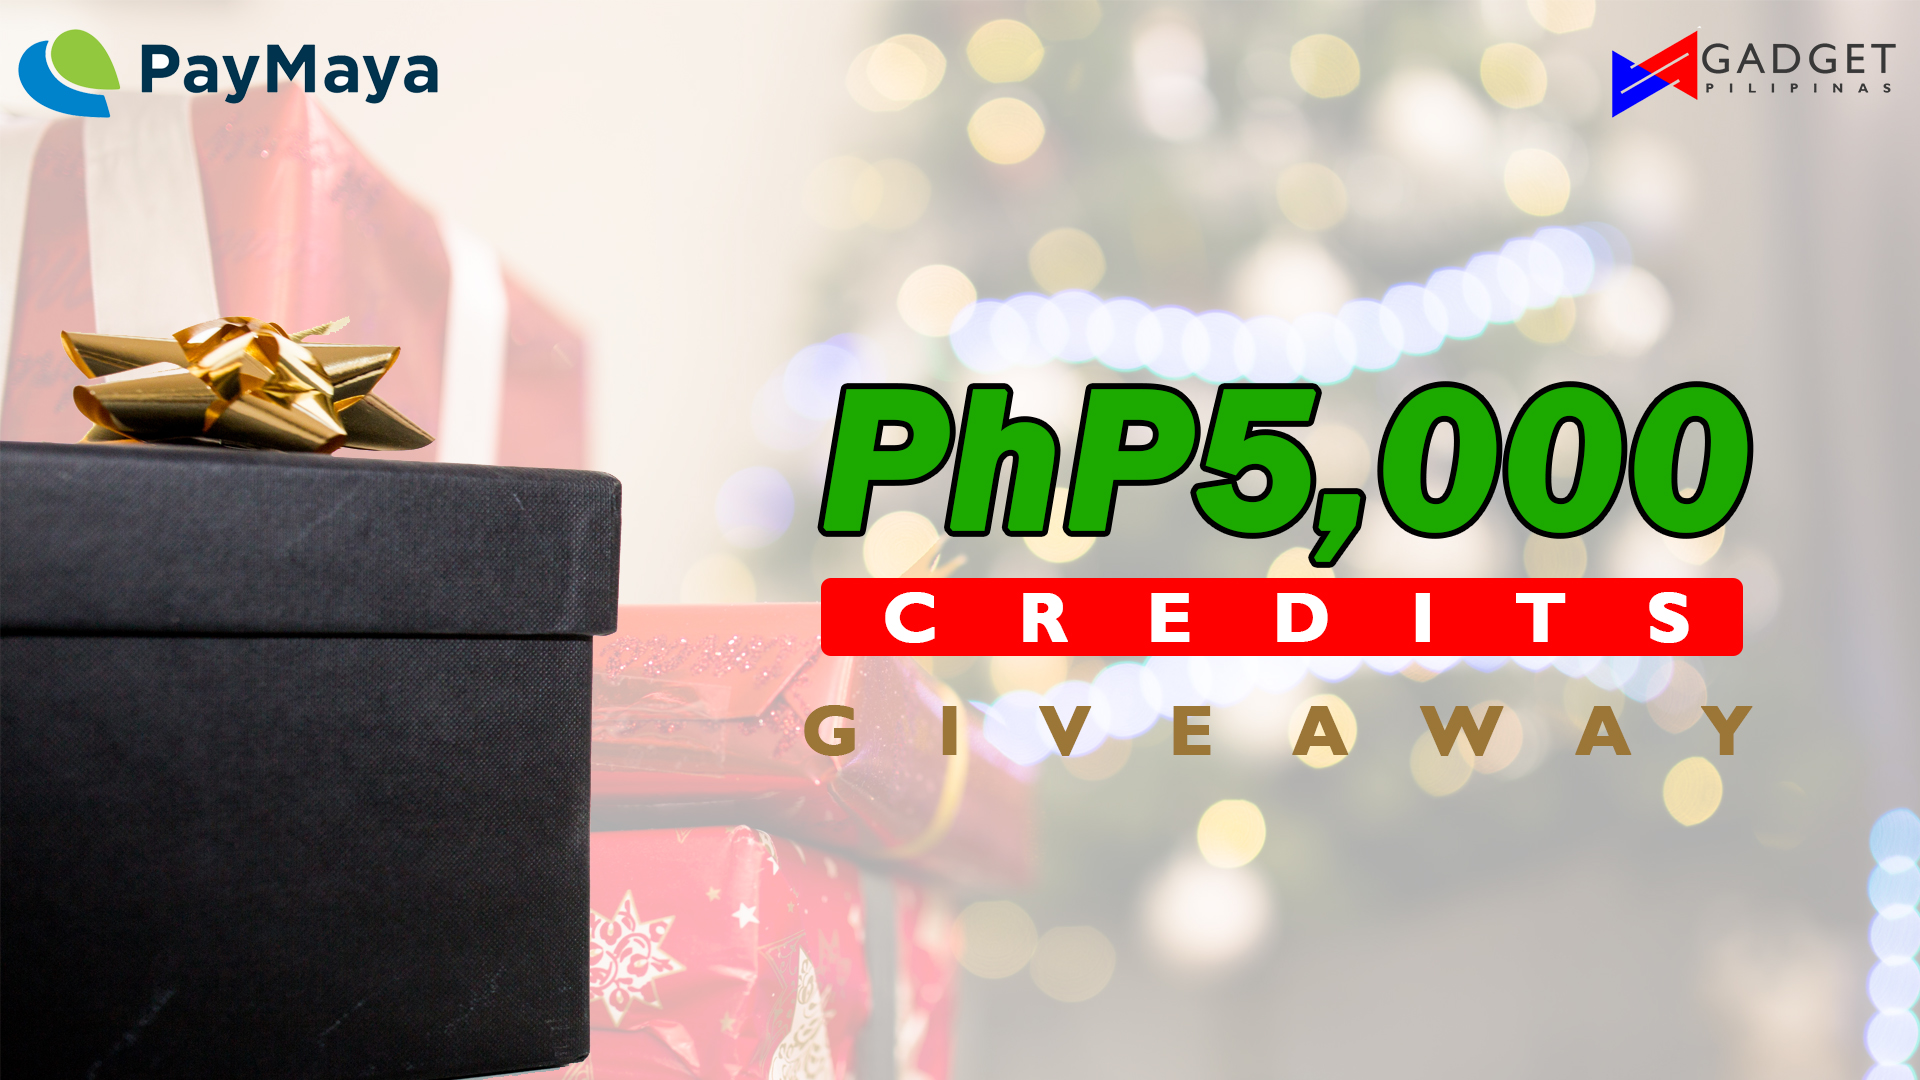 PayMaya gives you plenty of reasons to #ShareTheLove; plus we've got PhP5,000 PayMaya giveaway!